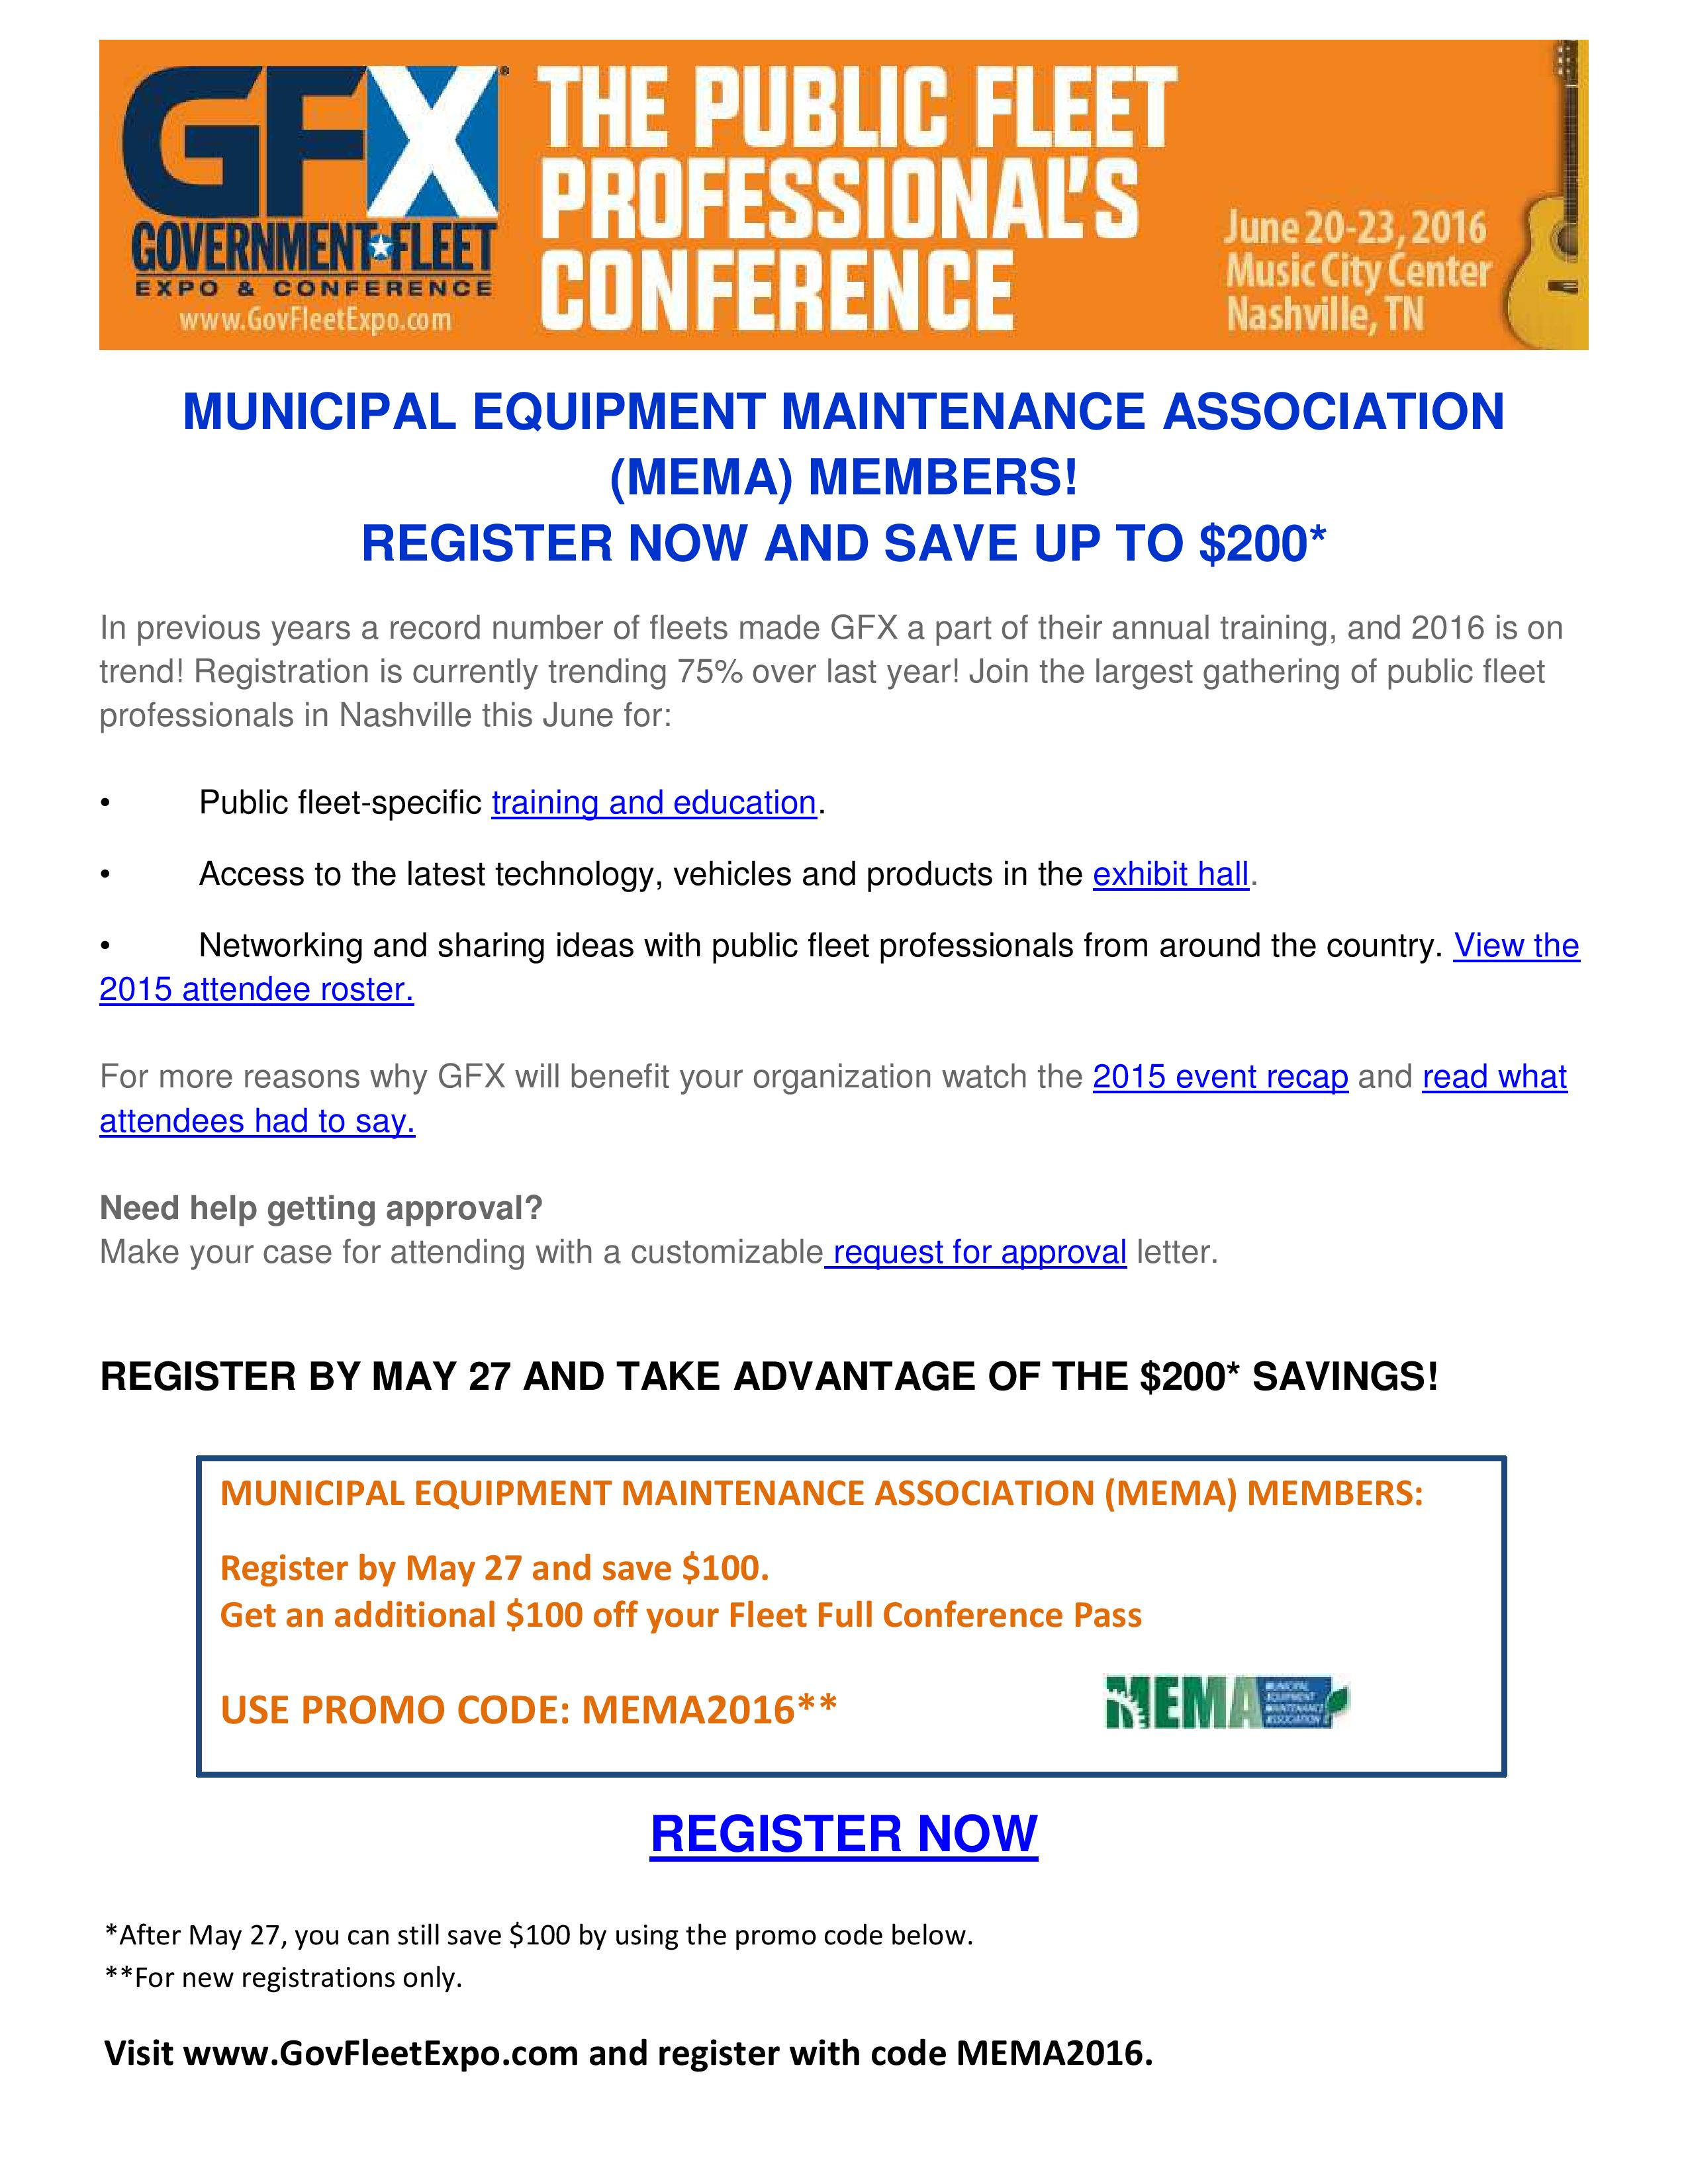 MEMA MEMBERS REGISTER NOW AND SAVE UP TO $200*